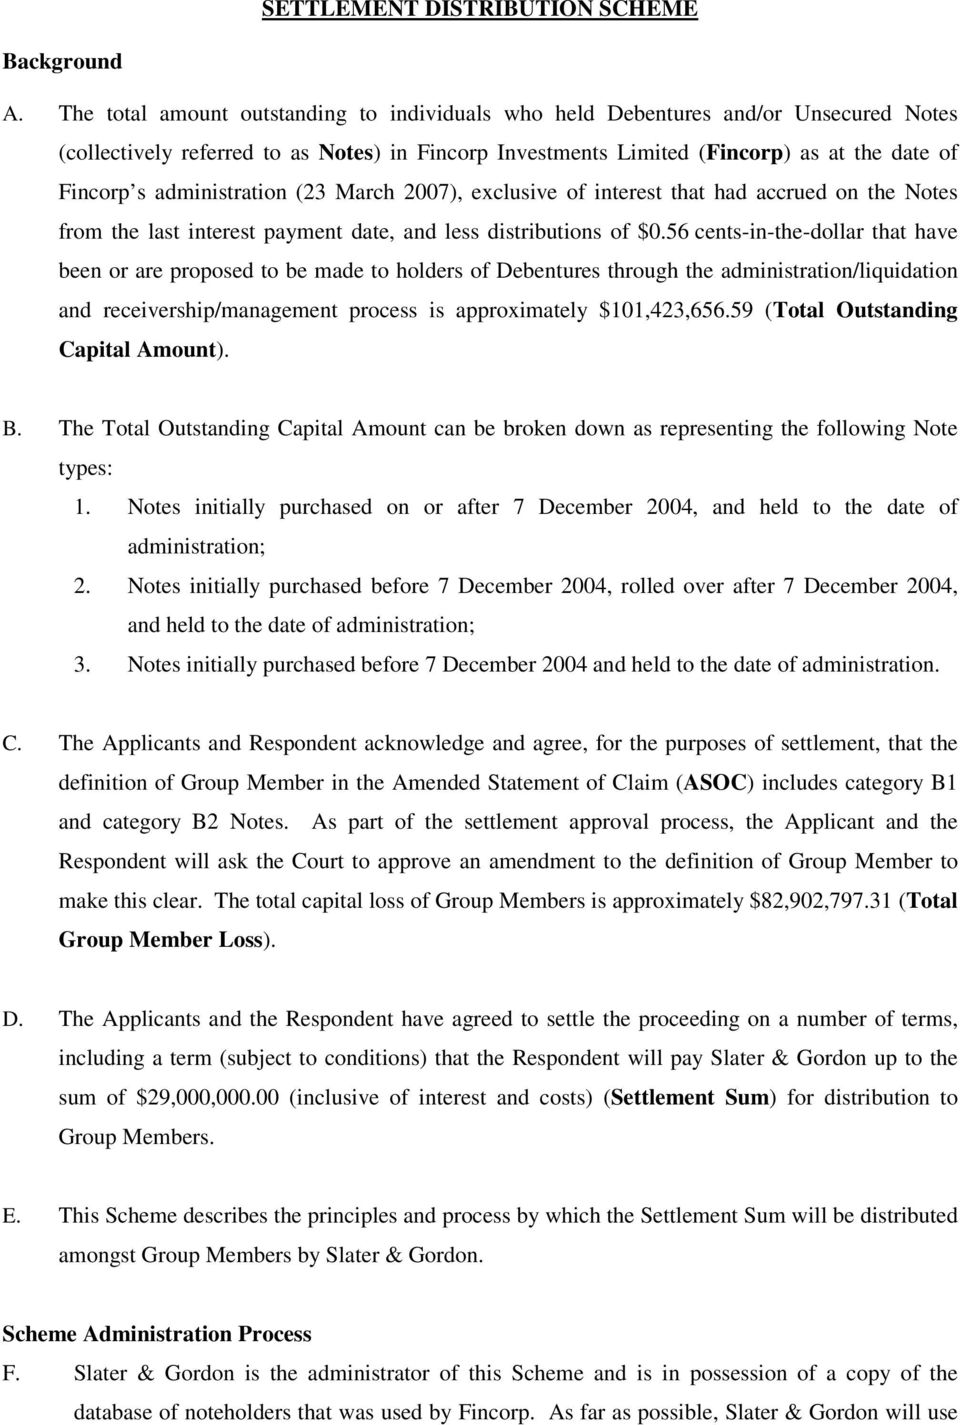 administration (23 March 2007), exclusive of interest that had accrued on the Notes from the last interest payment date, and less distributions of $0.